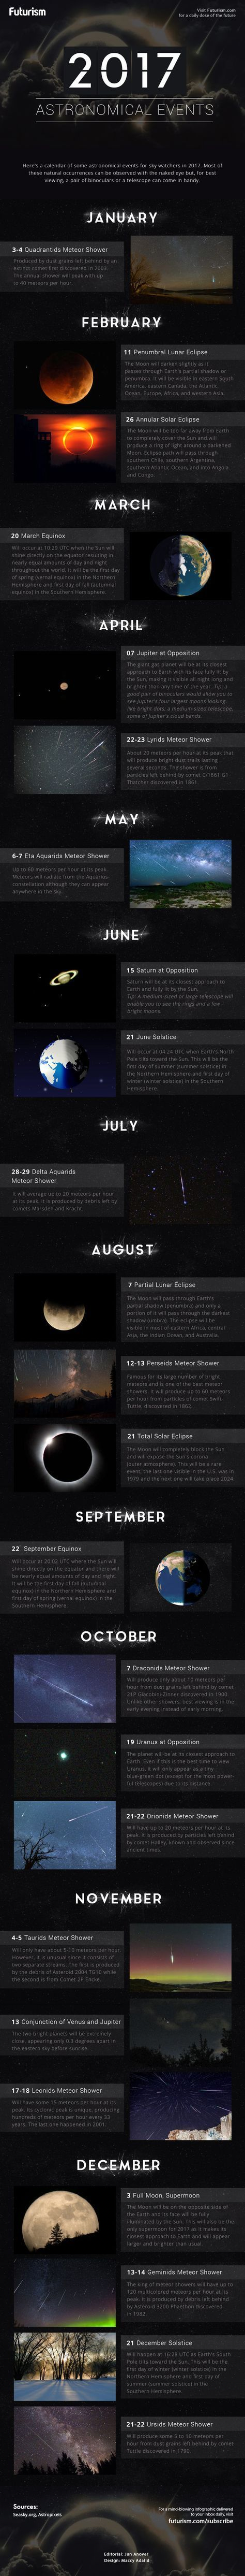 Here's a calendar of 2017's astronomical events for sky watchers, many of which can been seen with the naked eye. Keep looking up!